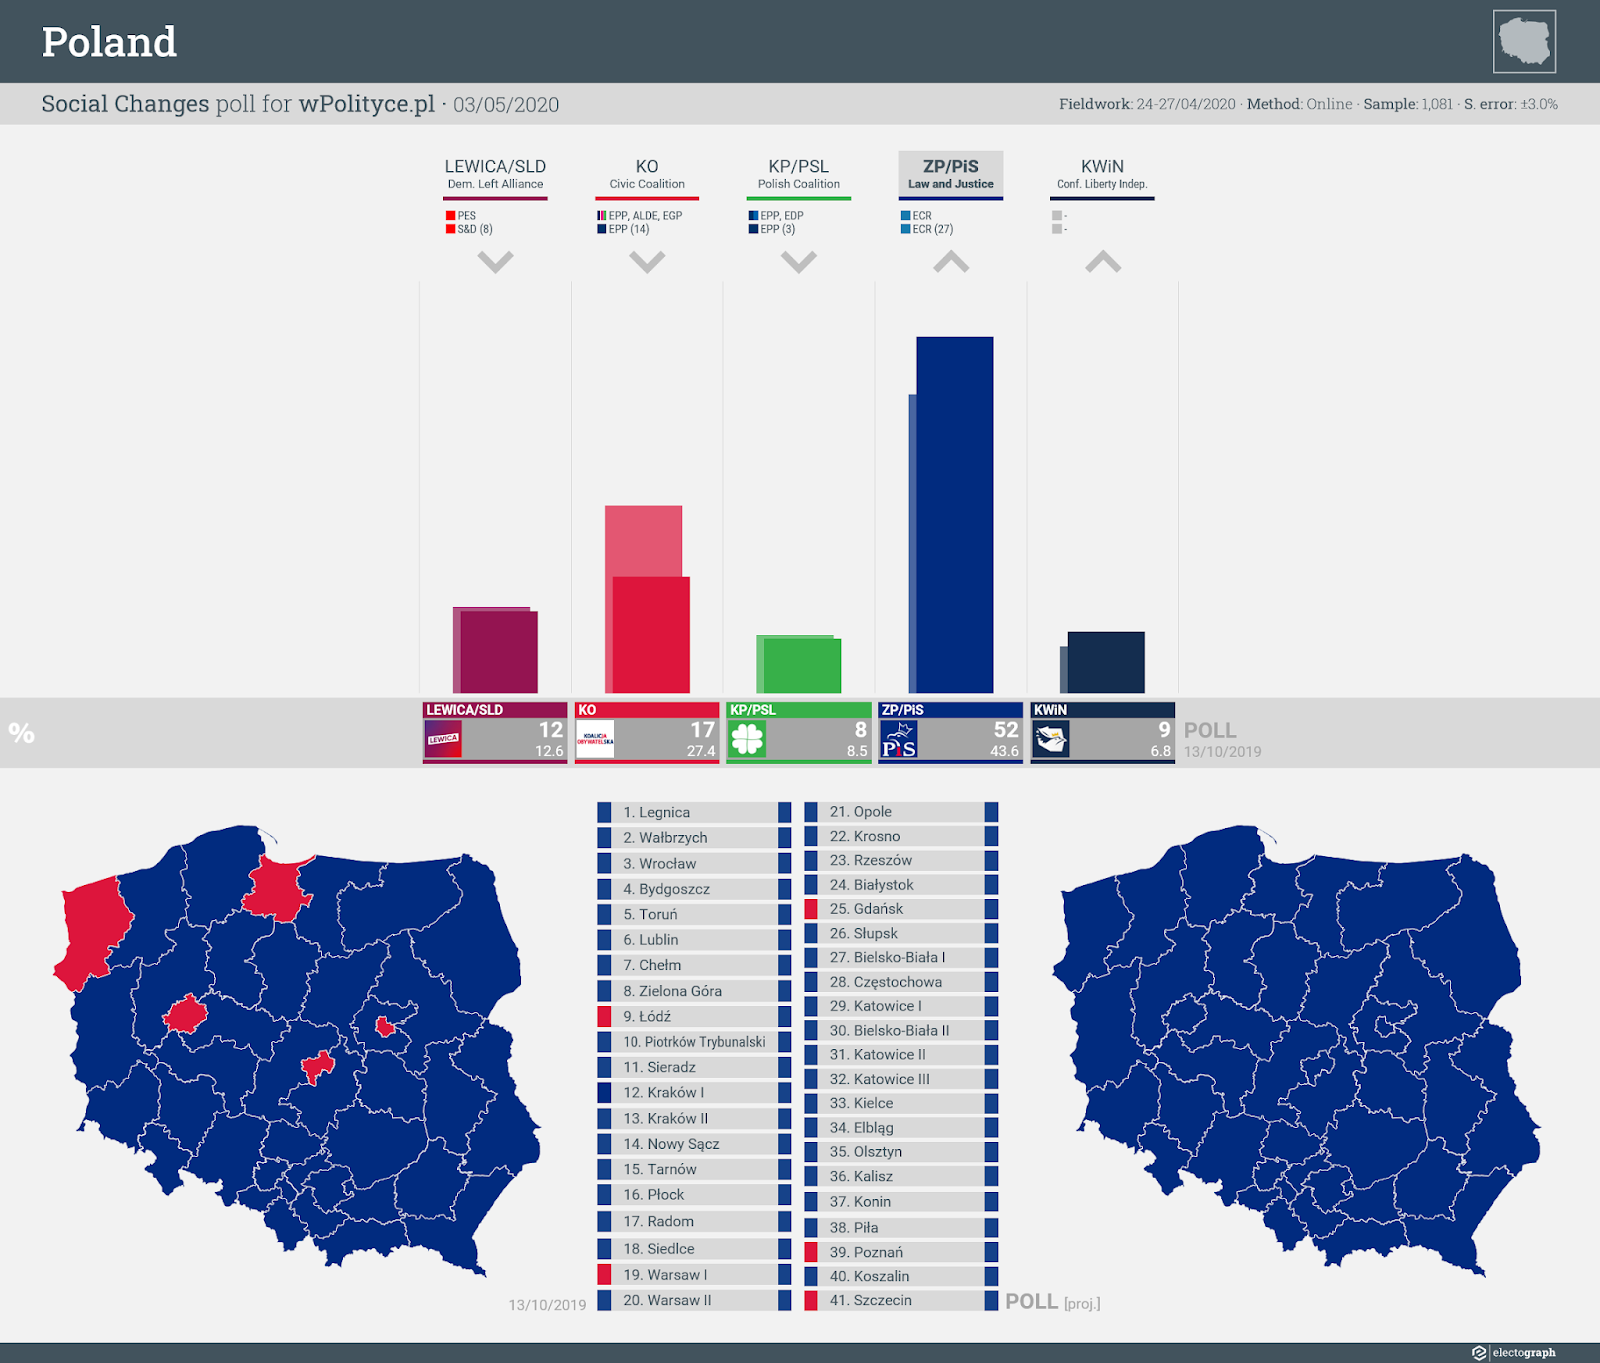 POLAND: Social Changes poll chart for wPolityce.pl, 3 May 2020